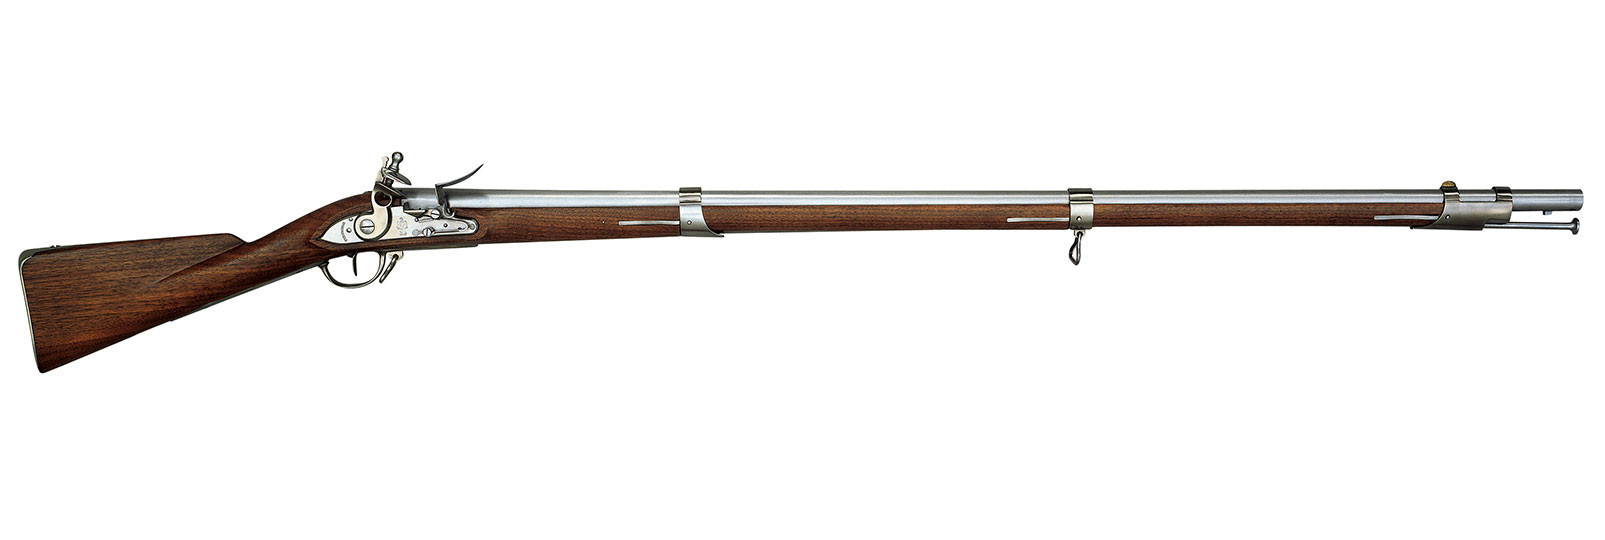 1795 Springfield Rifle